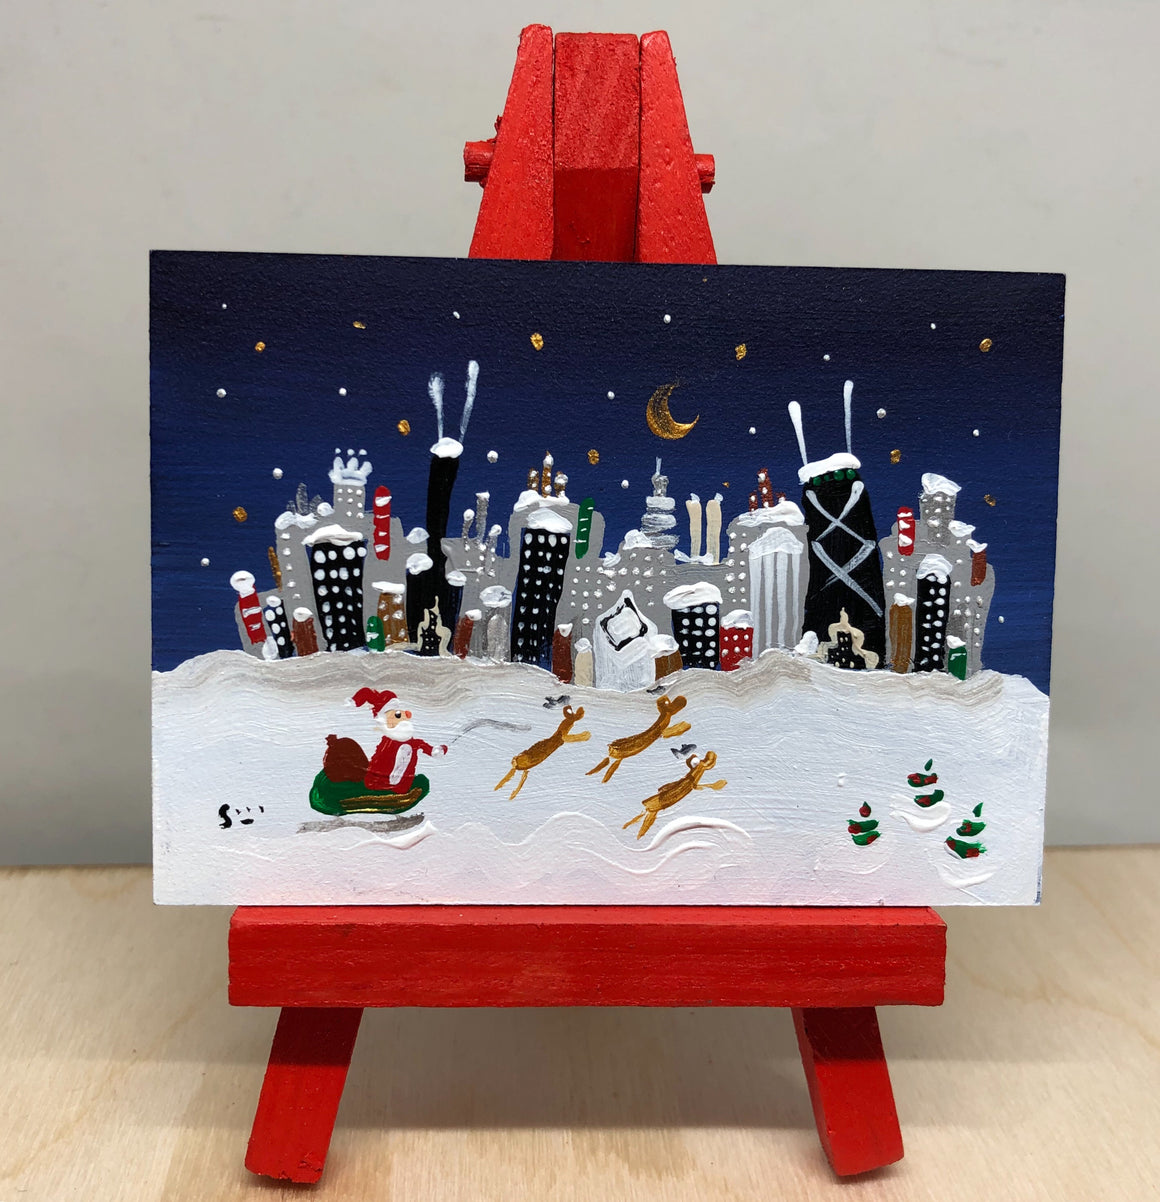 It's Christmas in Chicago in this mini painting by Joe Smigielski | Chicago Delivery